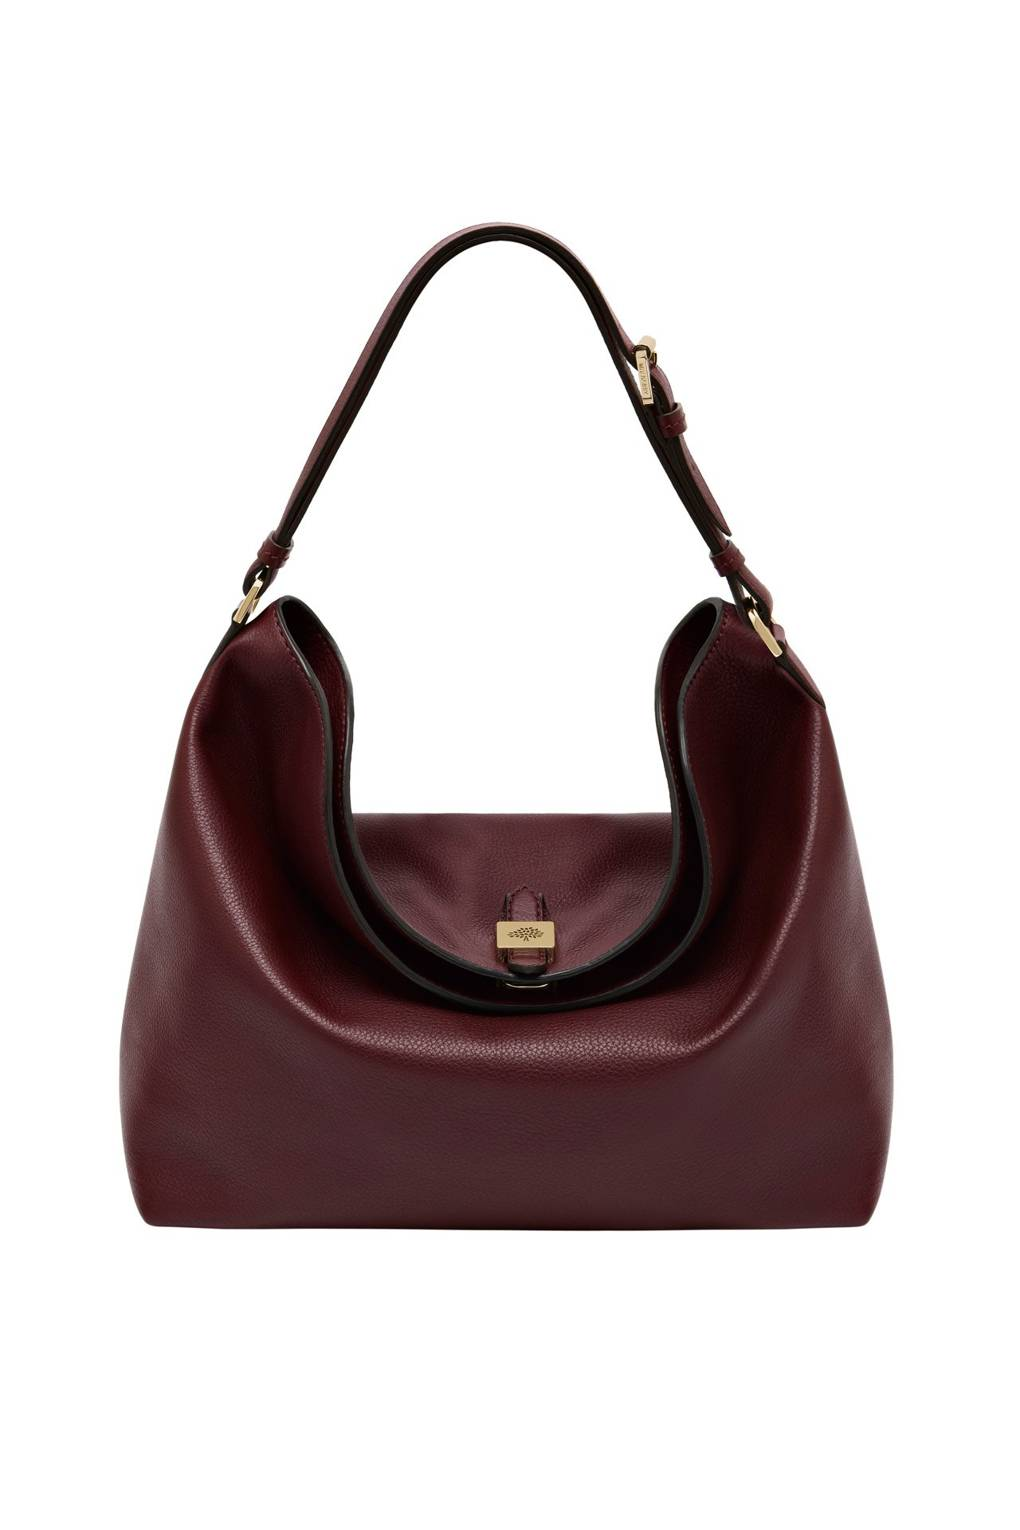 42733c512f Mulberry Tessie Bag Exclusive Interview and Quotes